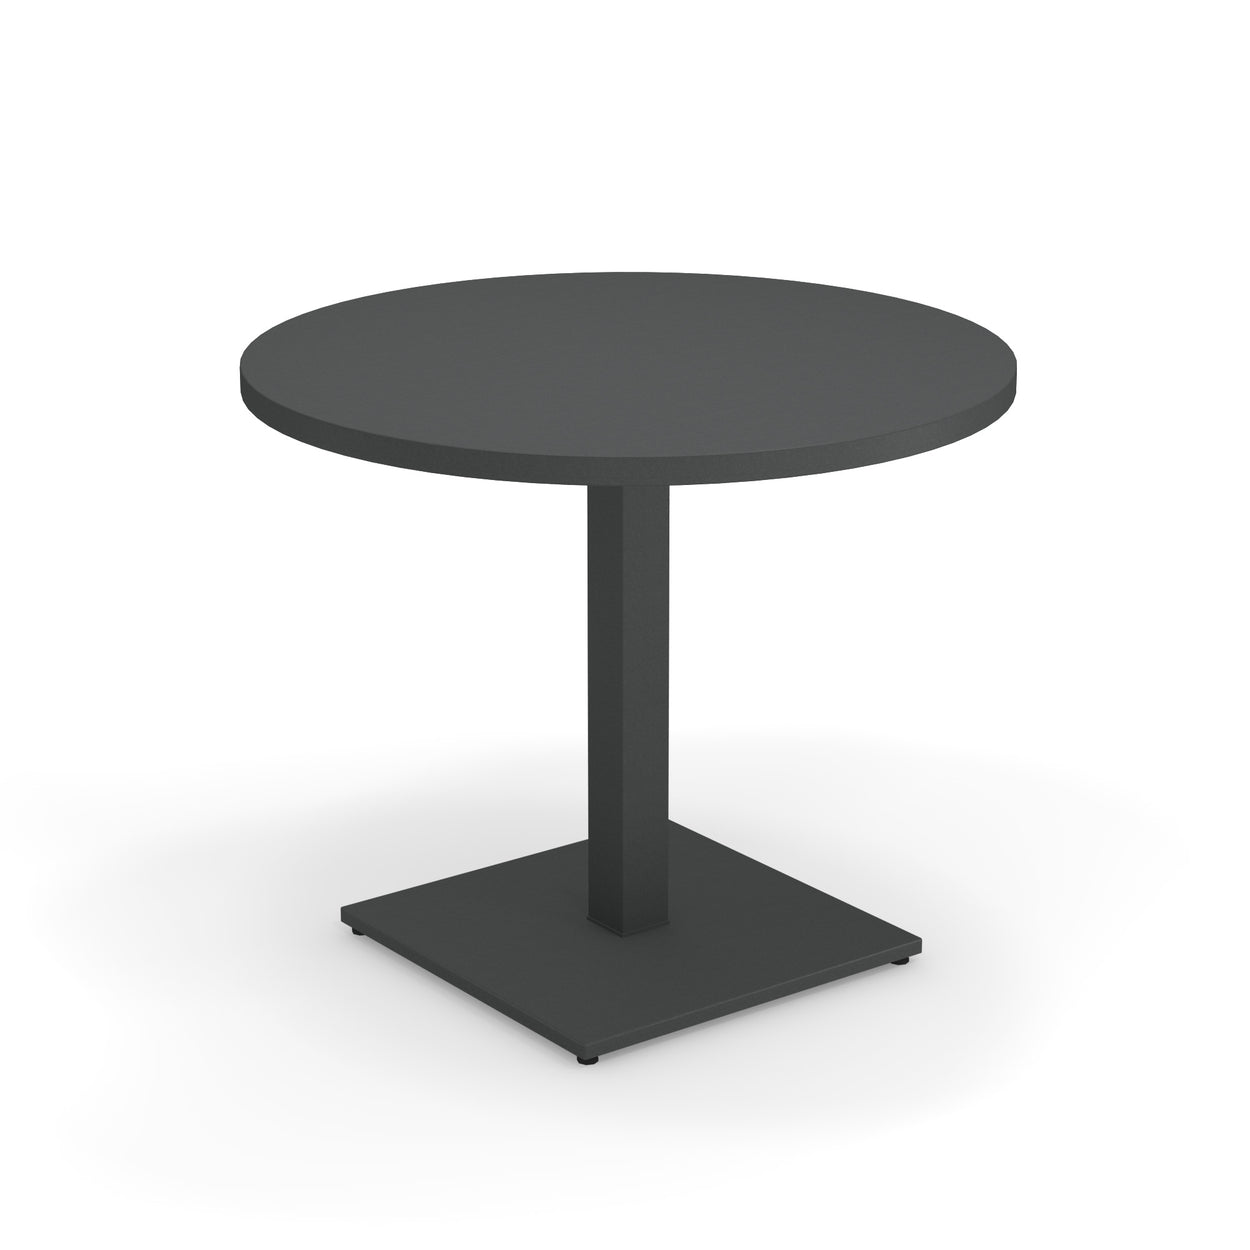 EMU Round Pedestal Table